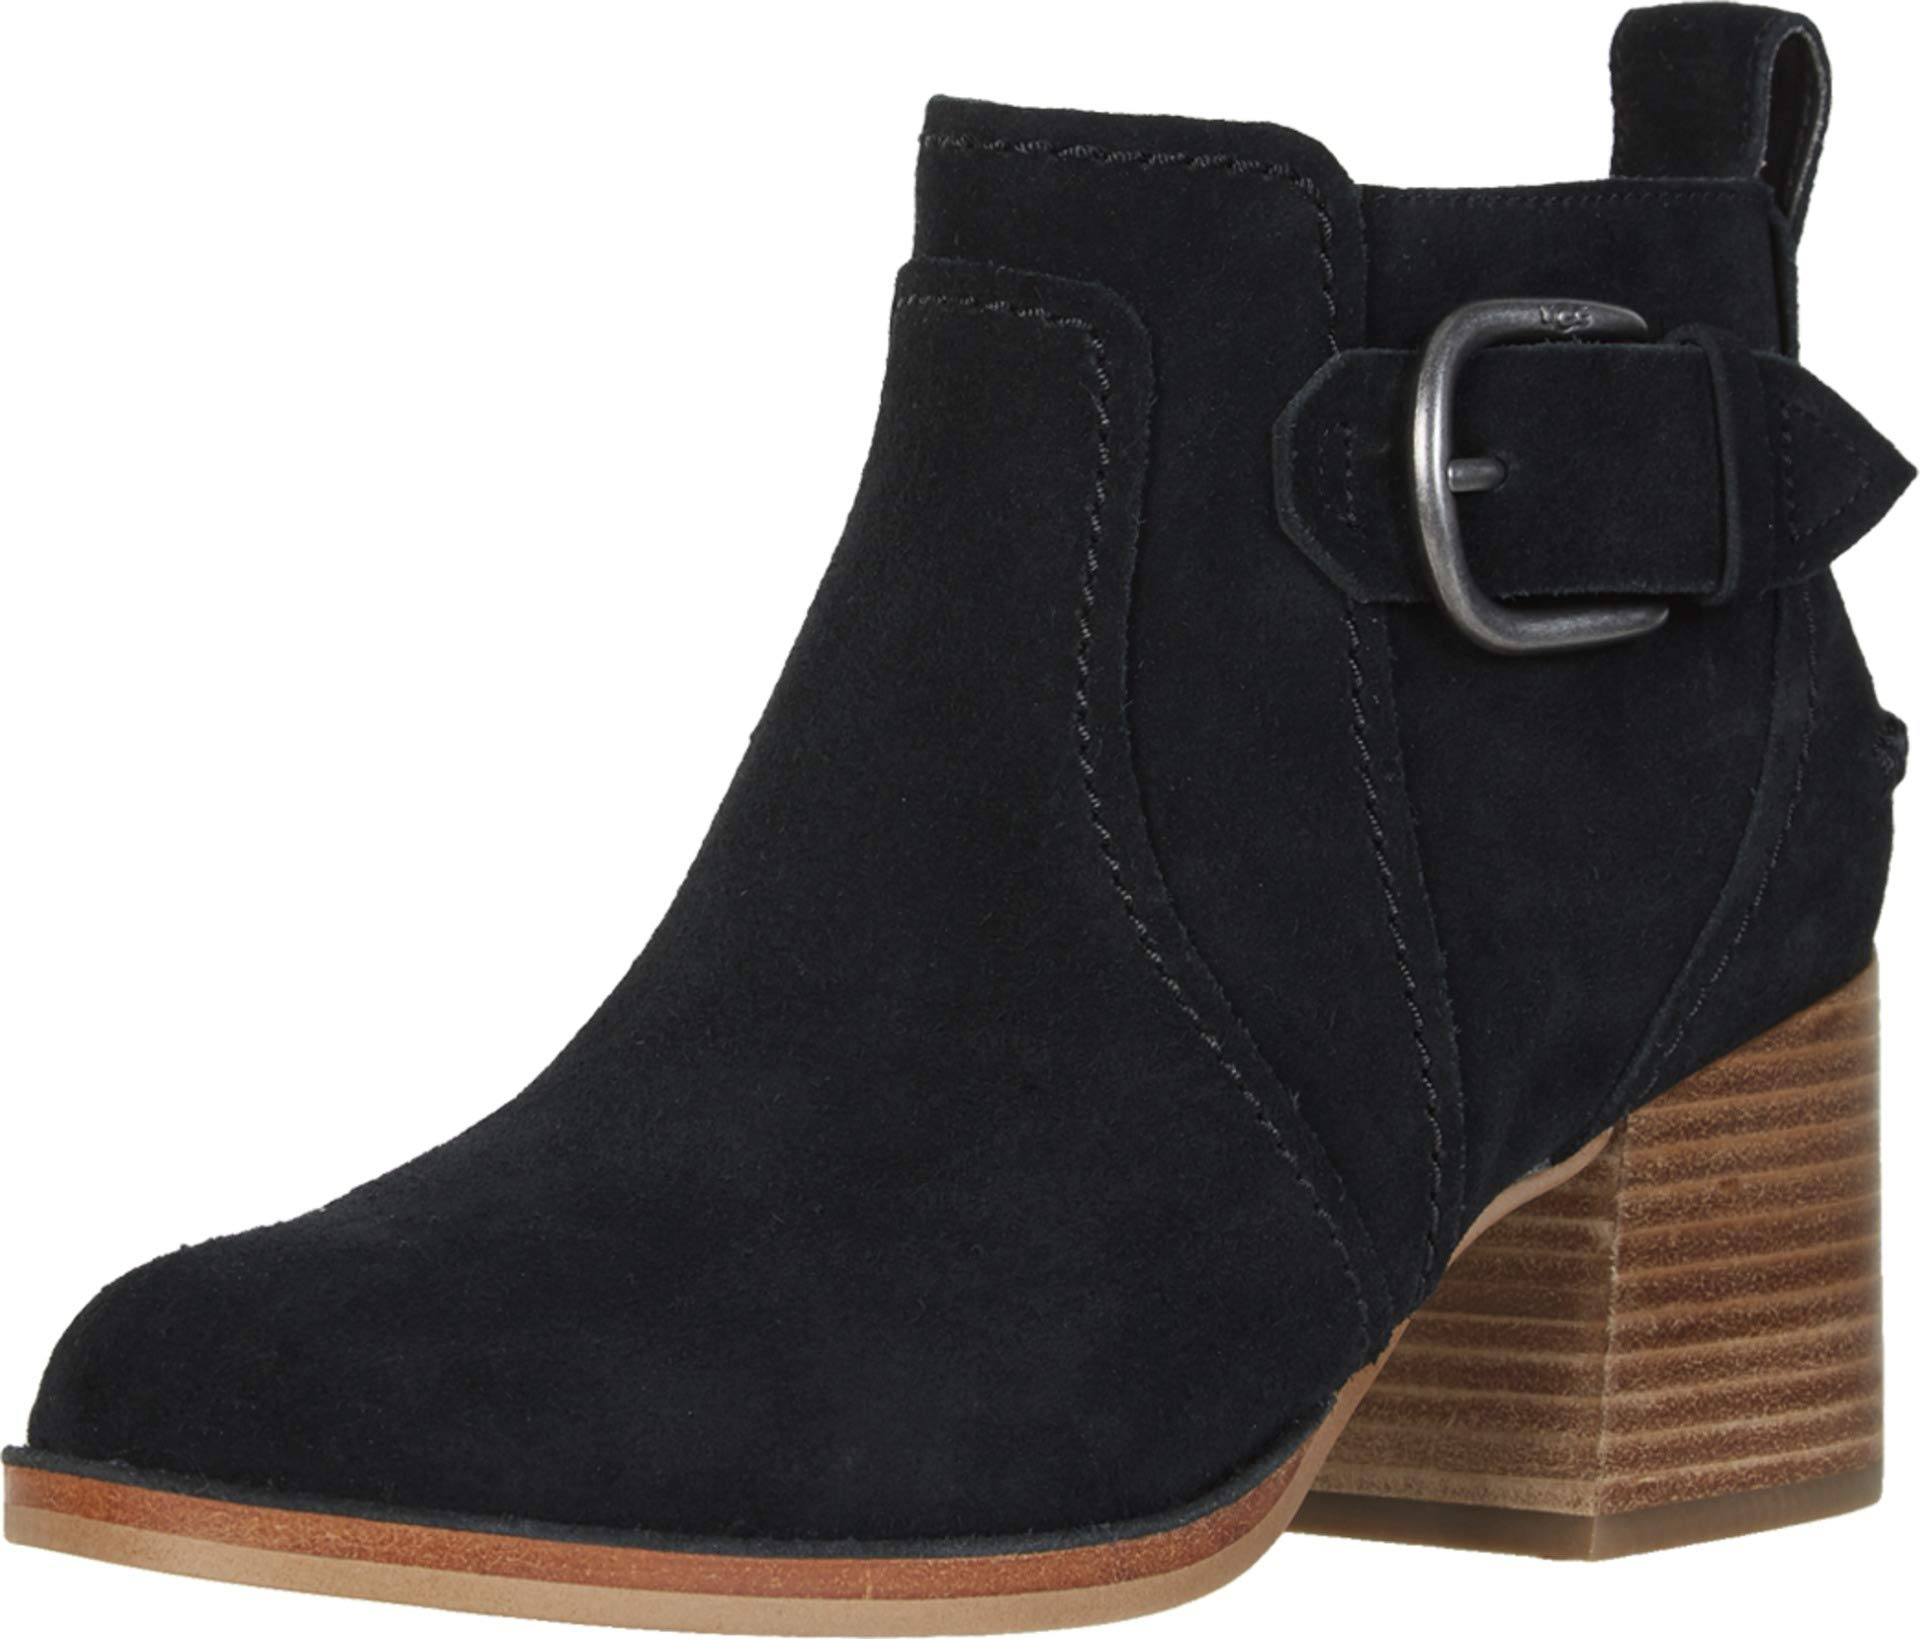 UGG Women's Leahy Ankle Boot, Black, 6.5 M US by UGG